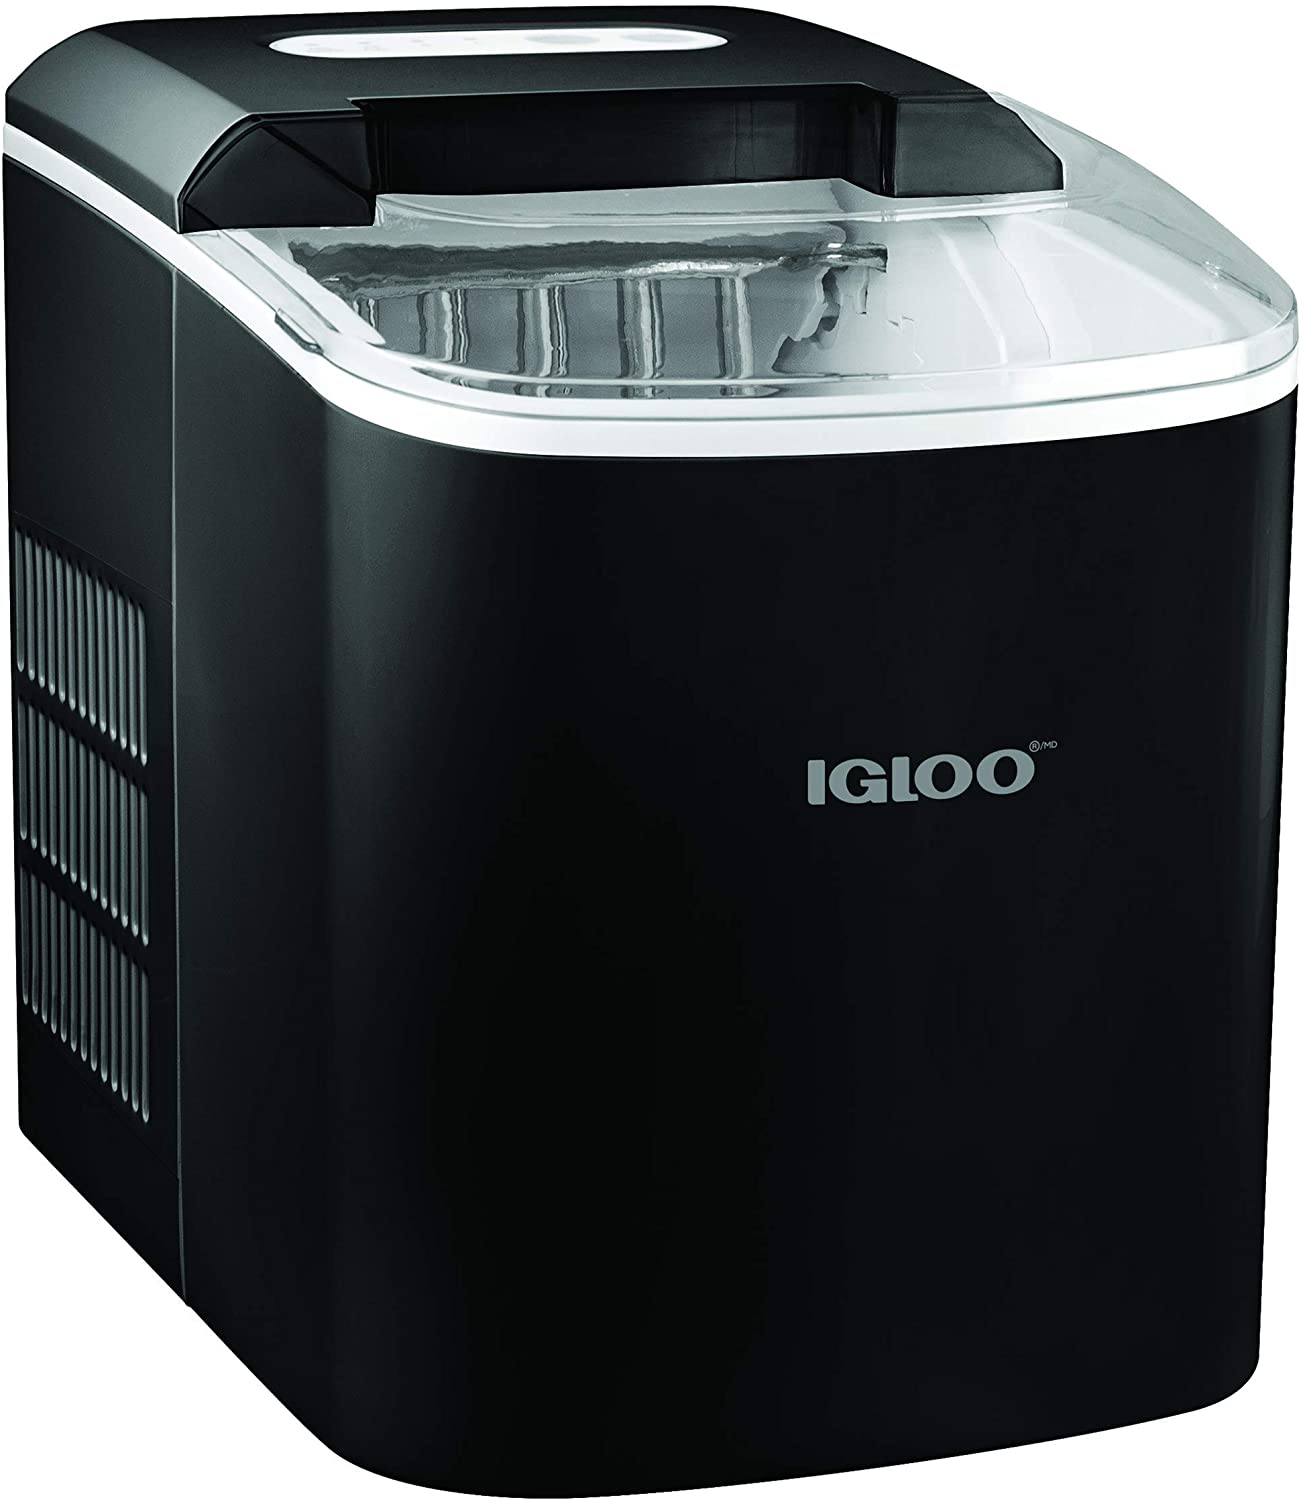 Igloo ICEB26BK Portable Electric Countertop Automatic Ice Maker